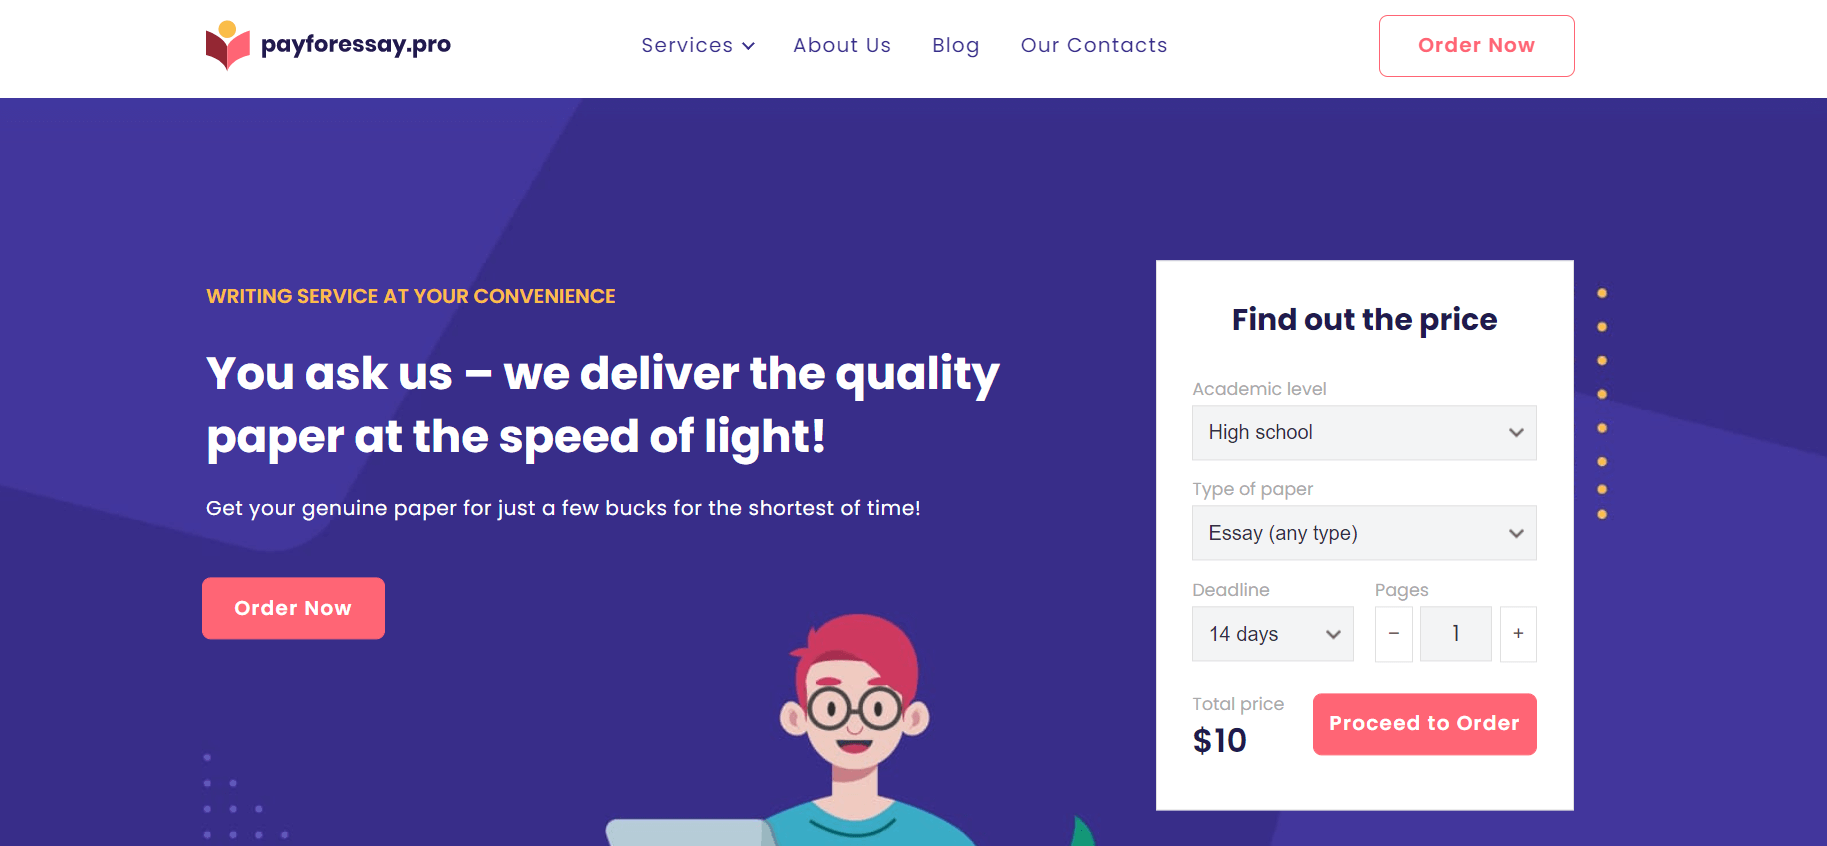 Payforessay.pro Writing Service Review by TheLegitEssay